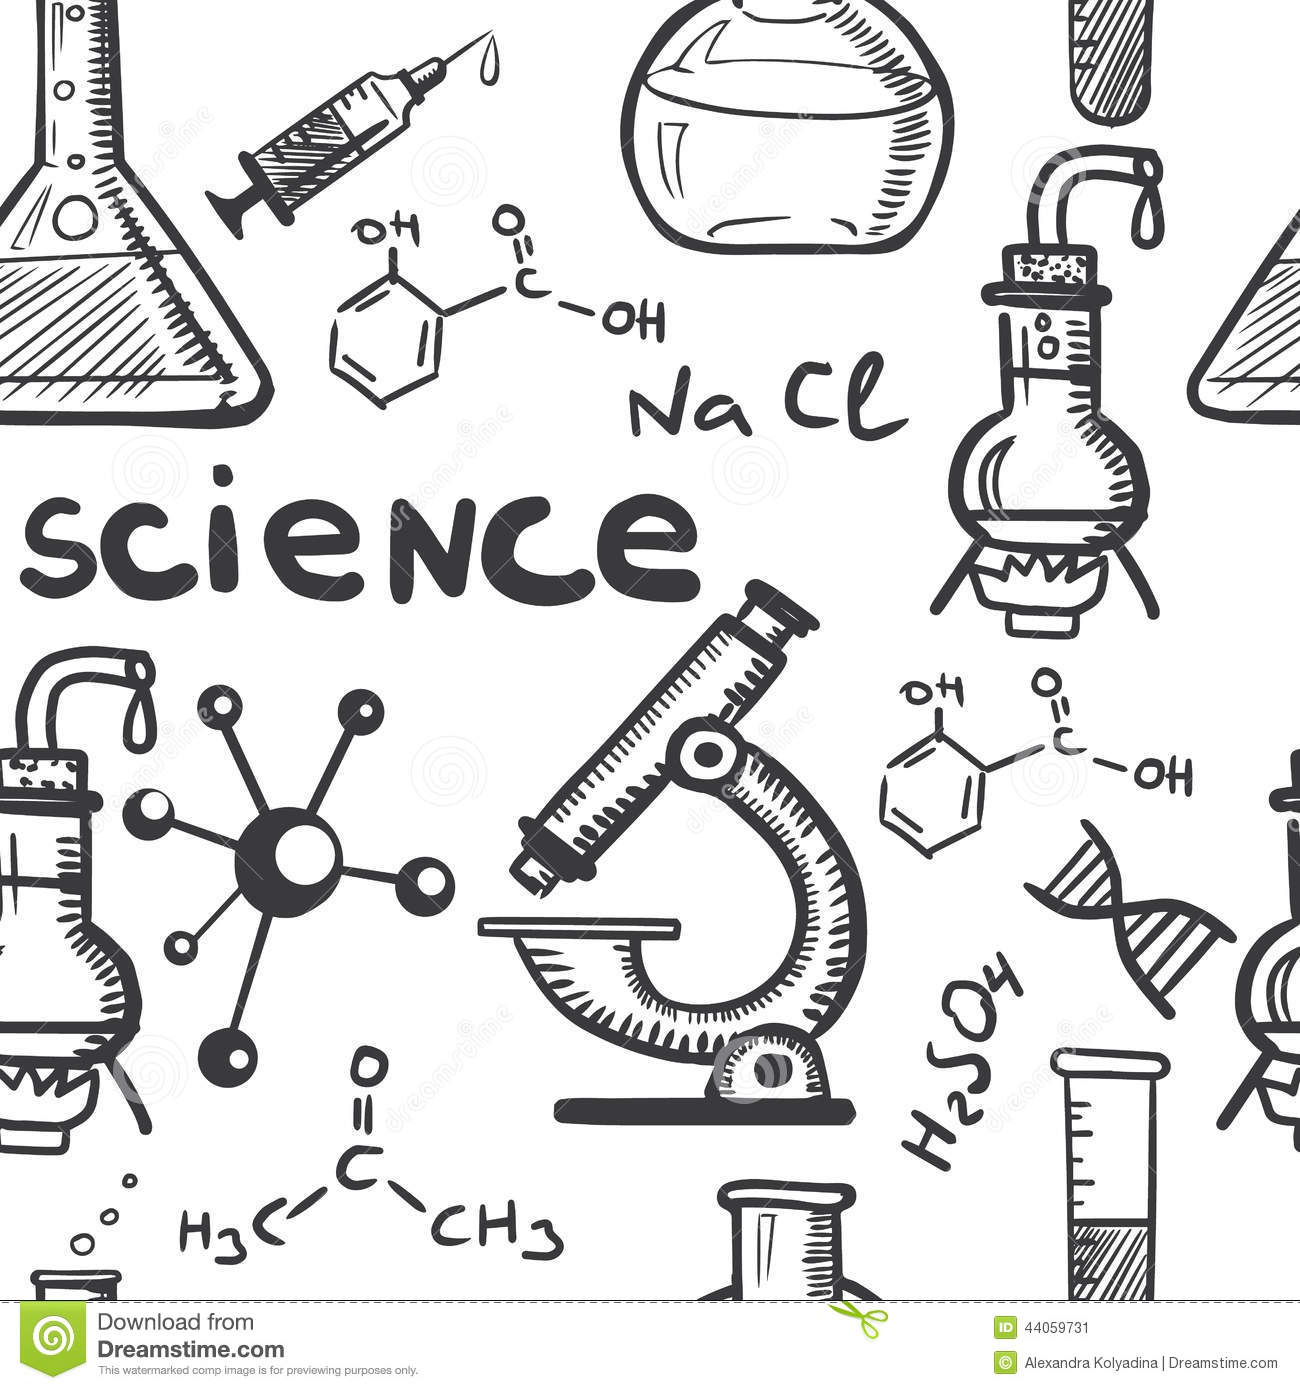 Chemistry And Science Concepts Seamless Stock Vector